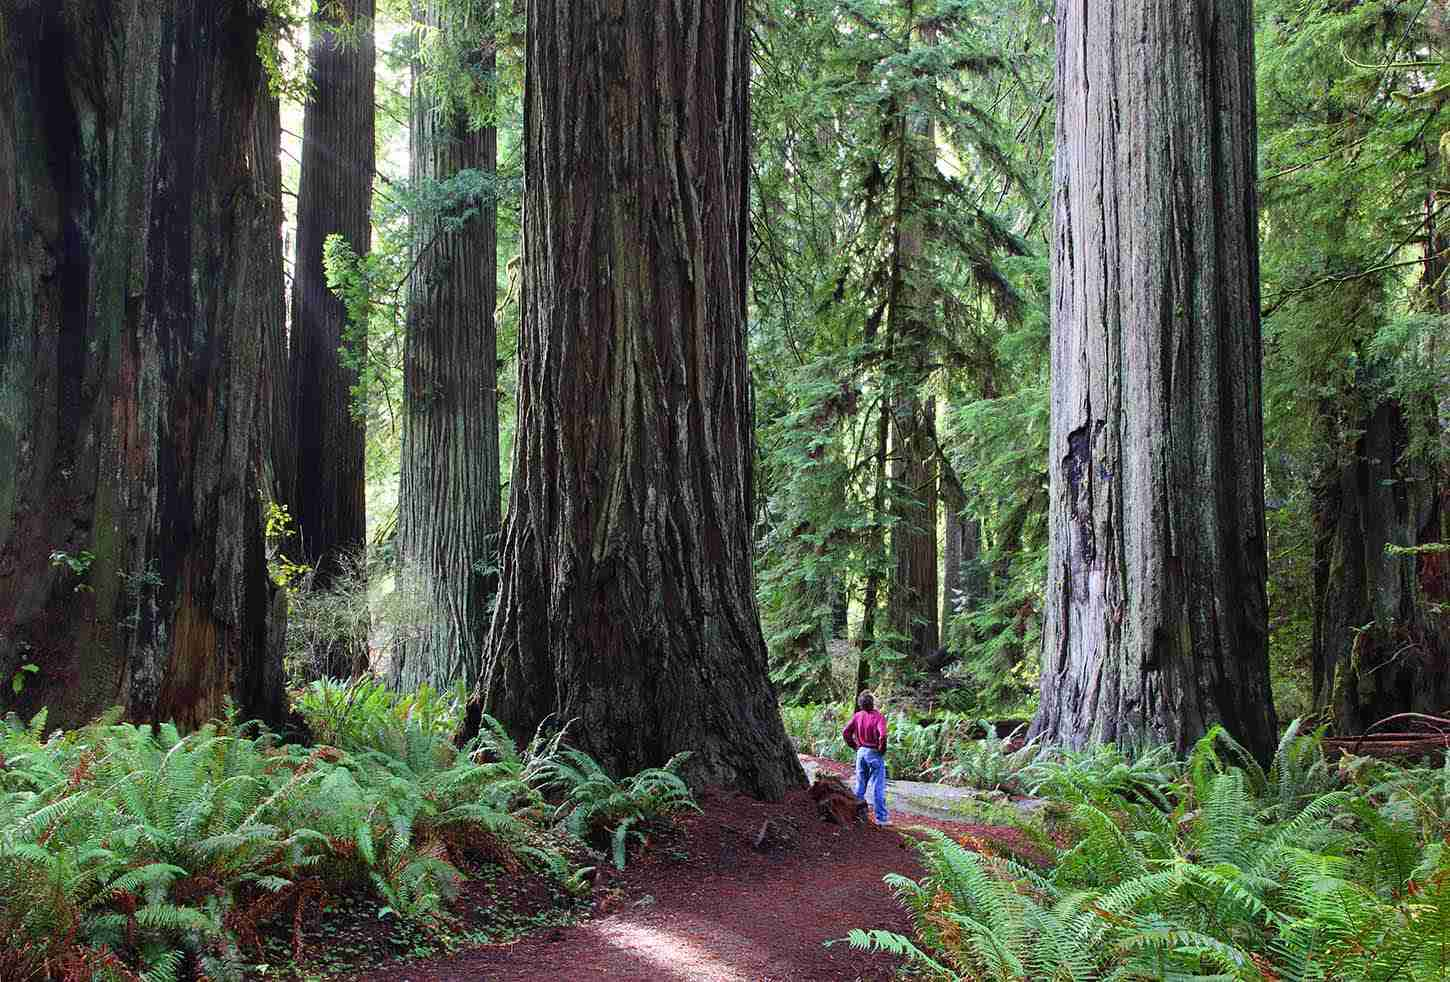 The Foothill Trail in Prairie Creek Redwoods State Park